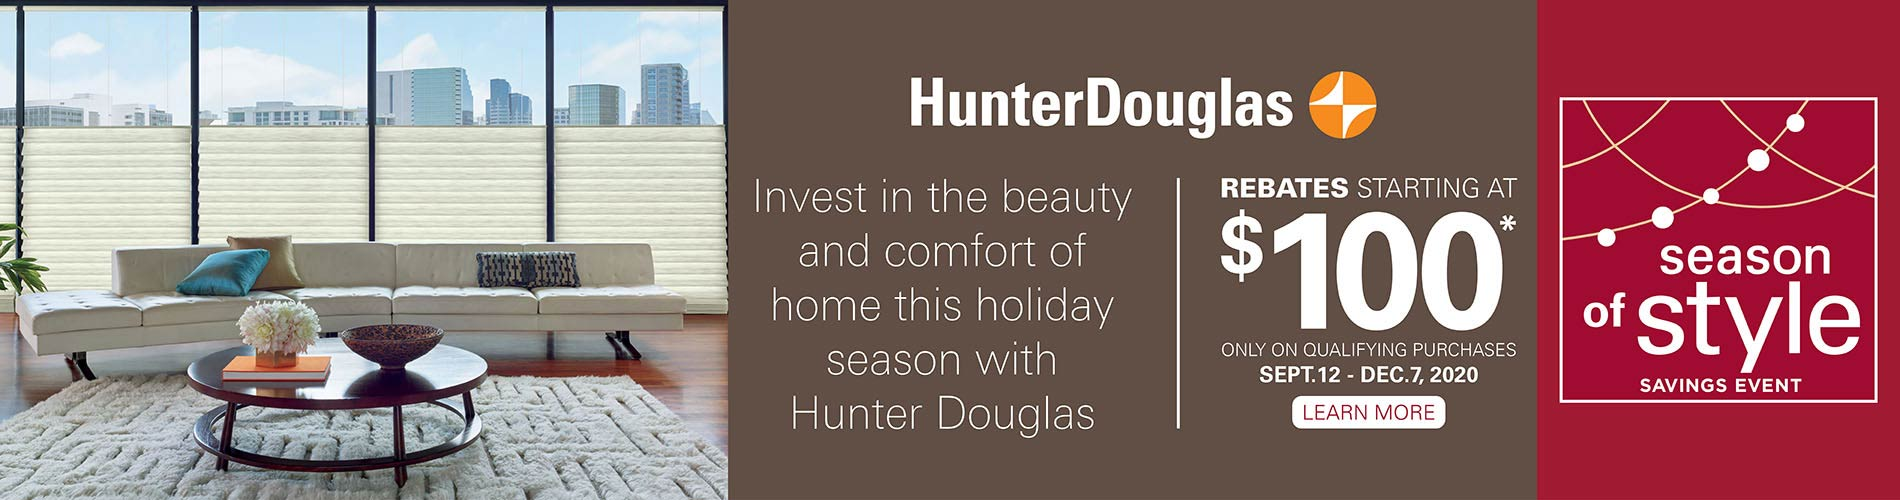 Hunter Douglas Window Fashions on sale during the Season of Style Savings Event!